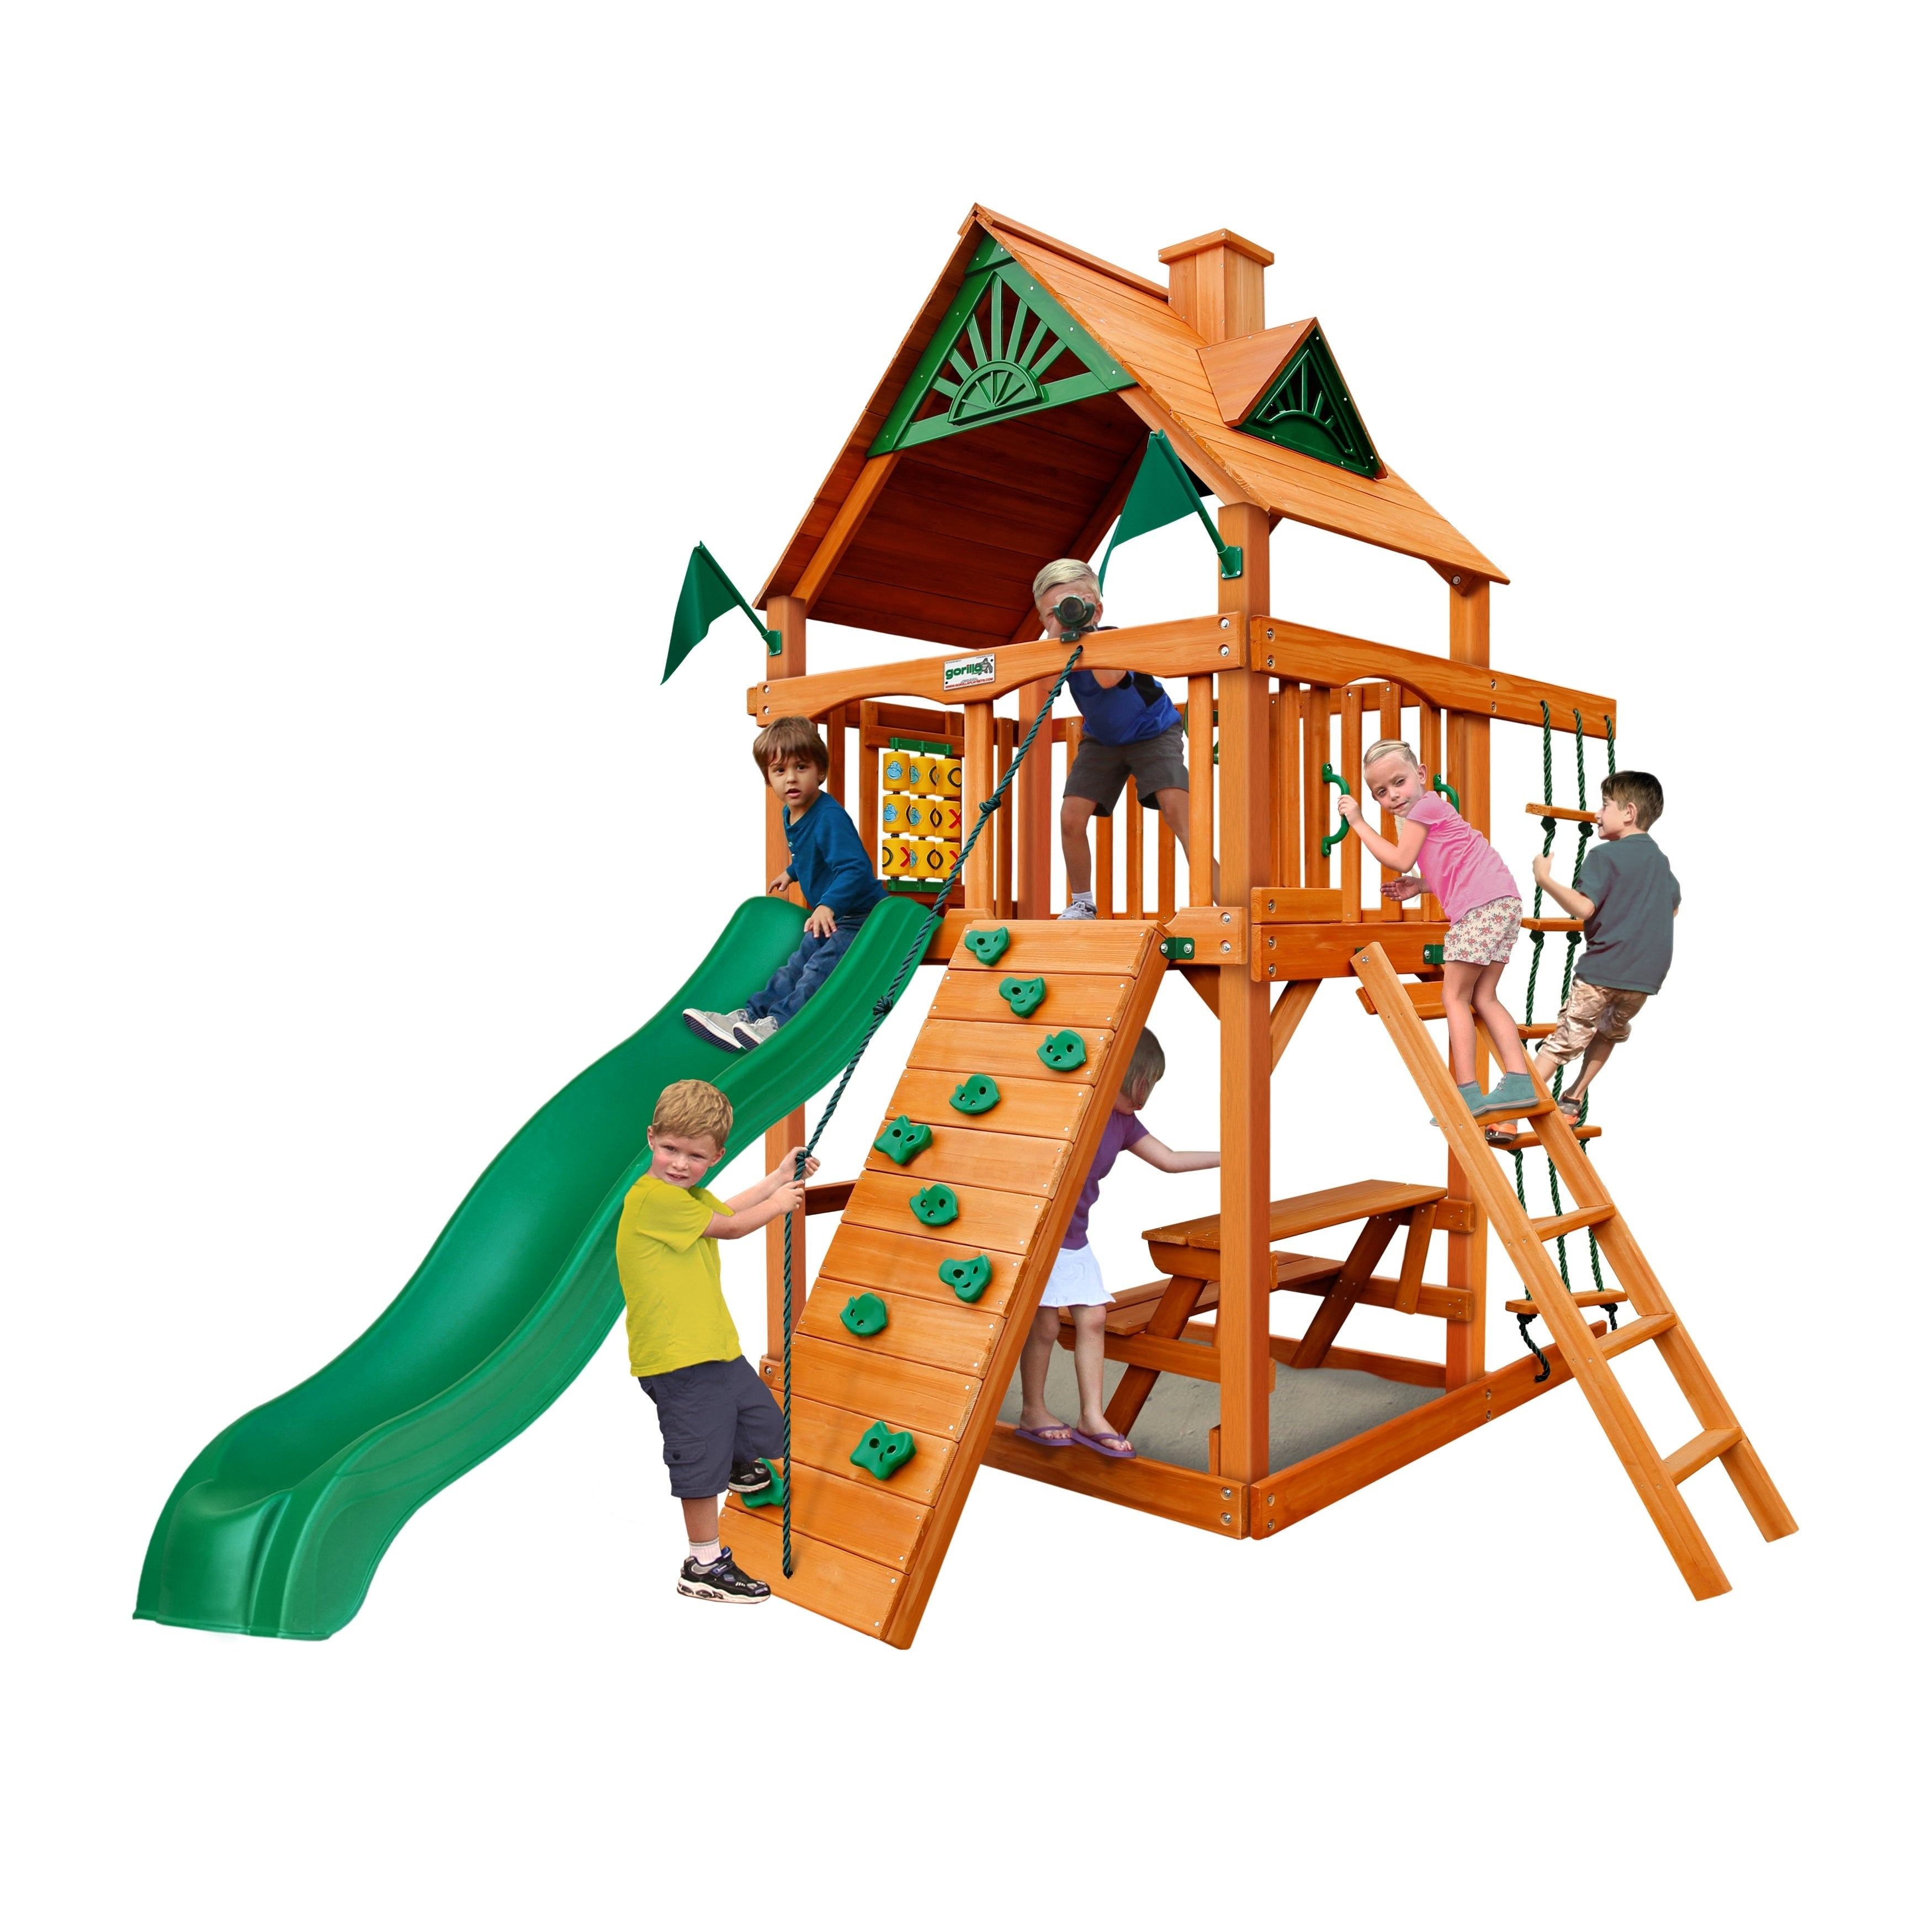 Shop Gorilla Playsets Cau Tower Cedar Swing Set with Natural ... on treehouse with zipline, treehouse blueprints, extreme wood playset plans, treehouse shed plans, diy treehouse plans, treehouse ladder plans, treehouse playgrounds, play set plans, playhouse plans, small yard fort plans, treehouse with tire swing, treehouse platform, treehouse tabs, homemade swing plans,